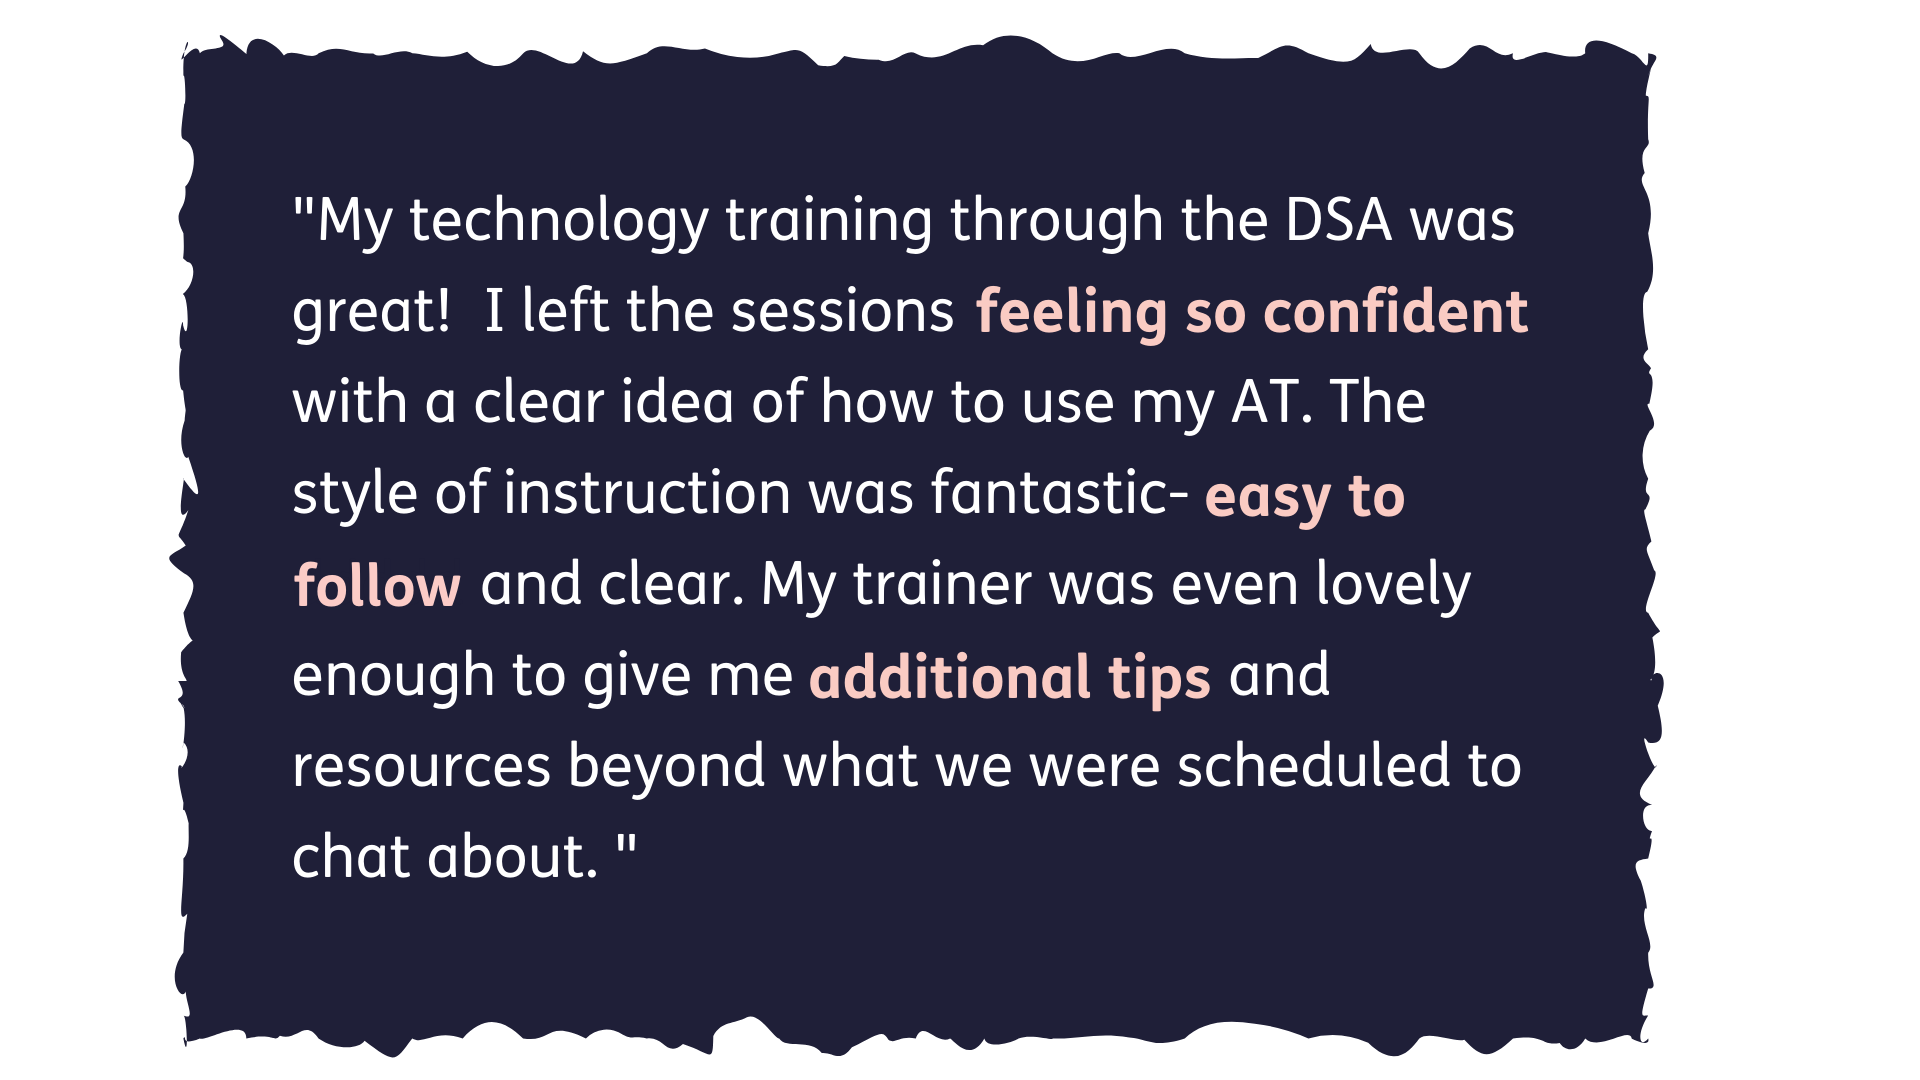 My technology training through the DSA was great! I left the sessions feeling so confident with a clear idea of how to use my AT. The style of instruction was fantastic -easy to follow and clear. My trainer was even lovely enough to give me additional tips and resources beyond what we were scheduled to chat about.